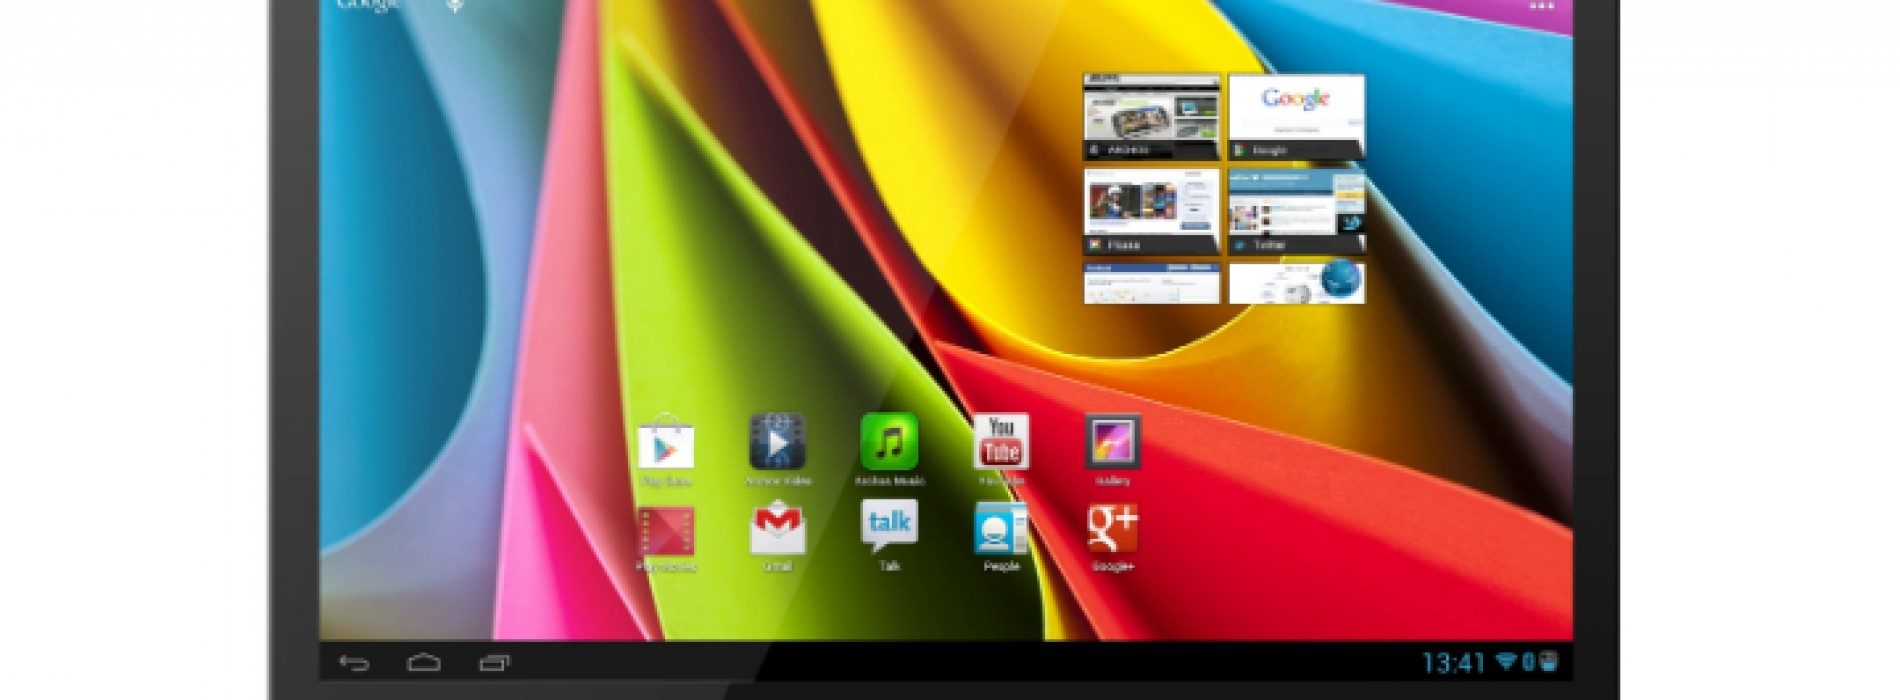 ARCHOS TV Connect turns HDTV into an Android powered smart TV